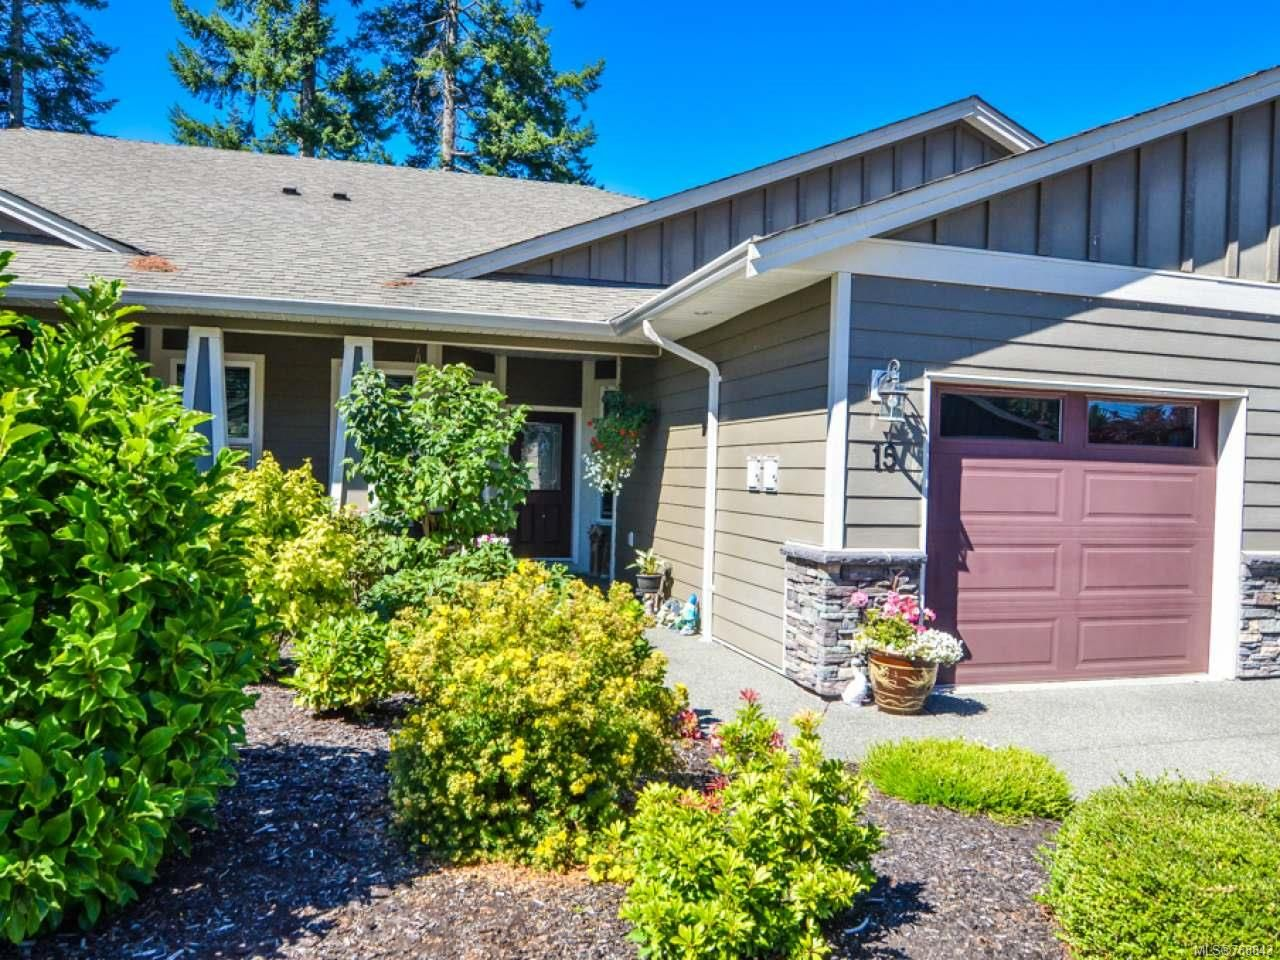 Photo 12: Photos: 15 346 Erickson Rd in CAMPBELL RIVER: CR Willow Point Row/Townhouse for sale (Campbell River)  : MLS®# 768843